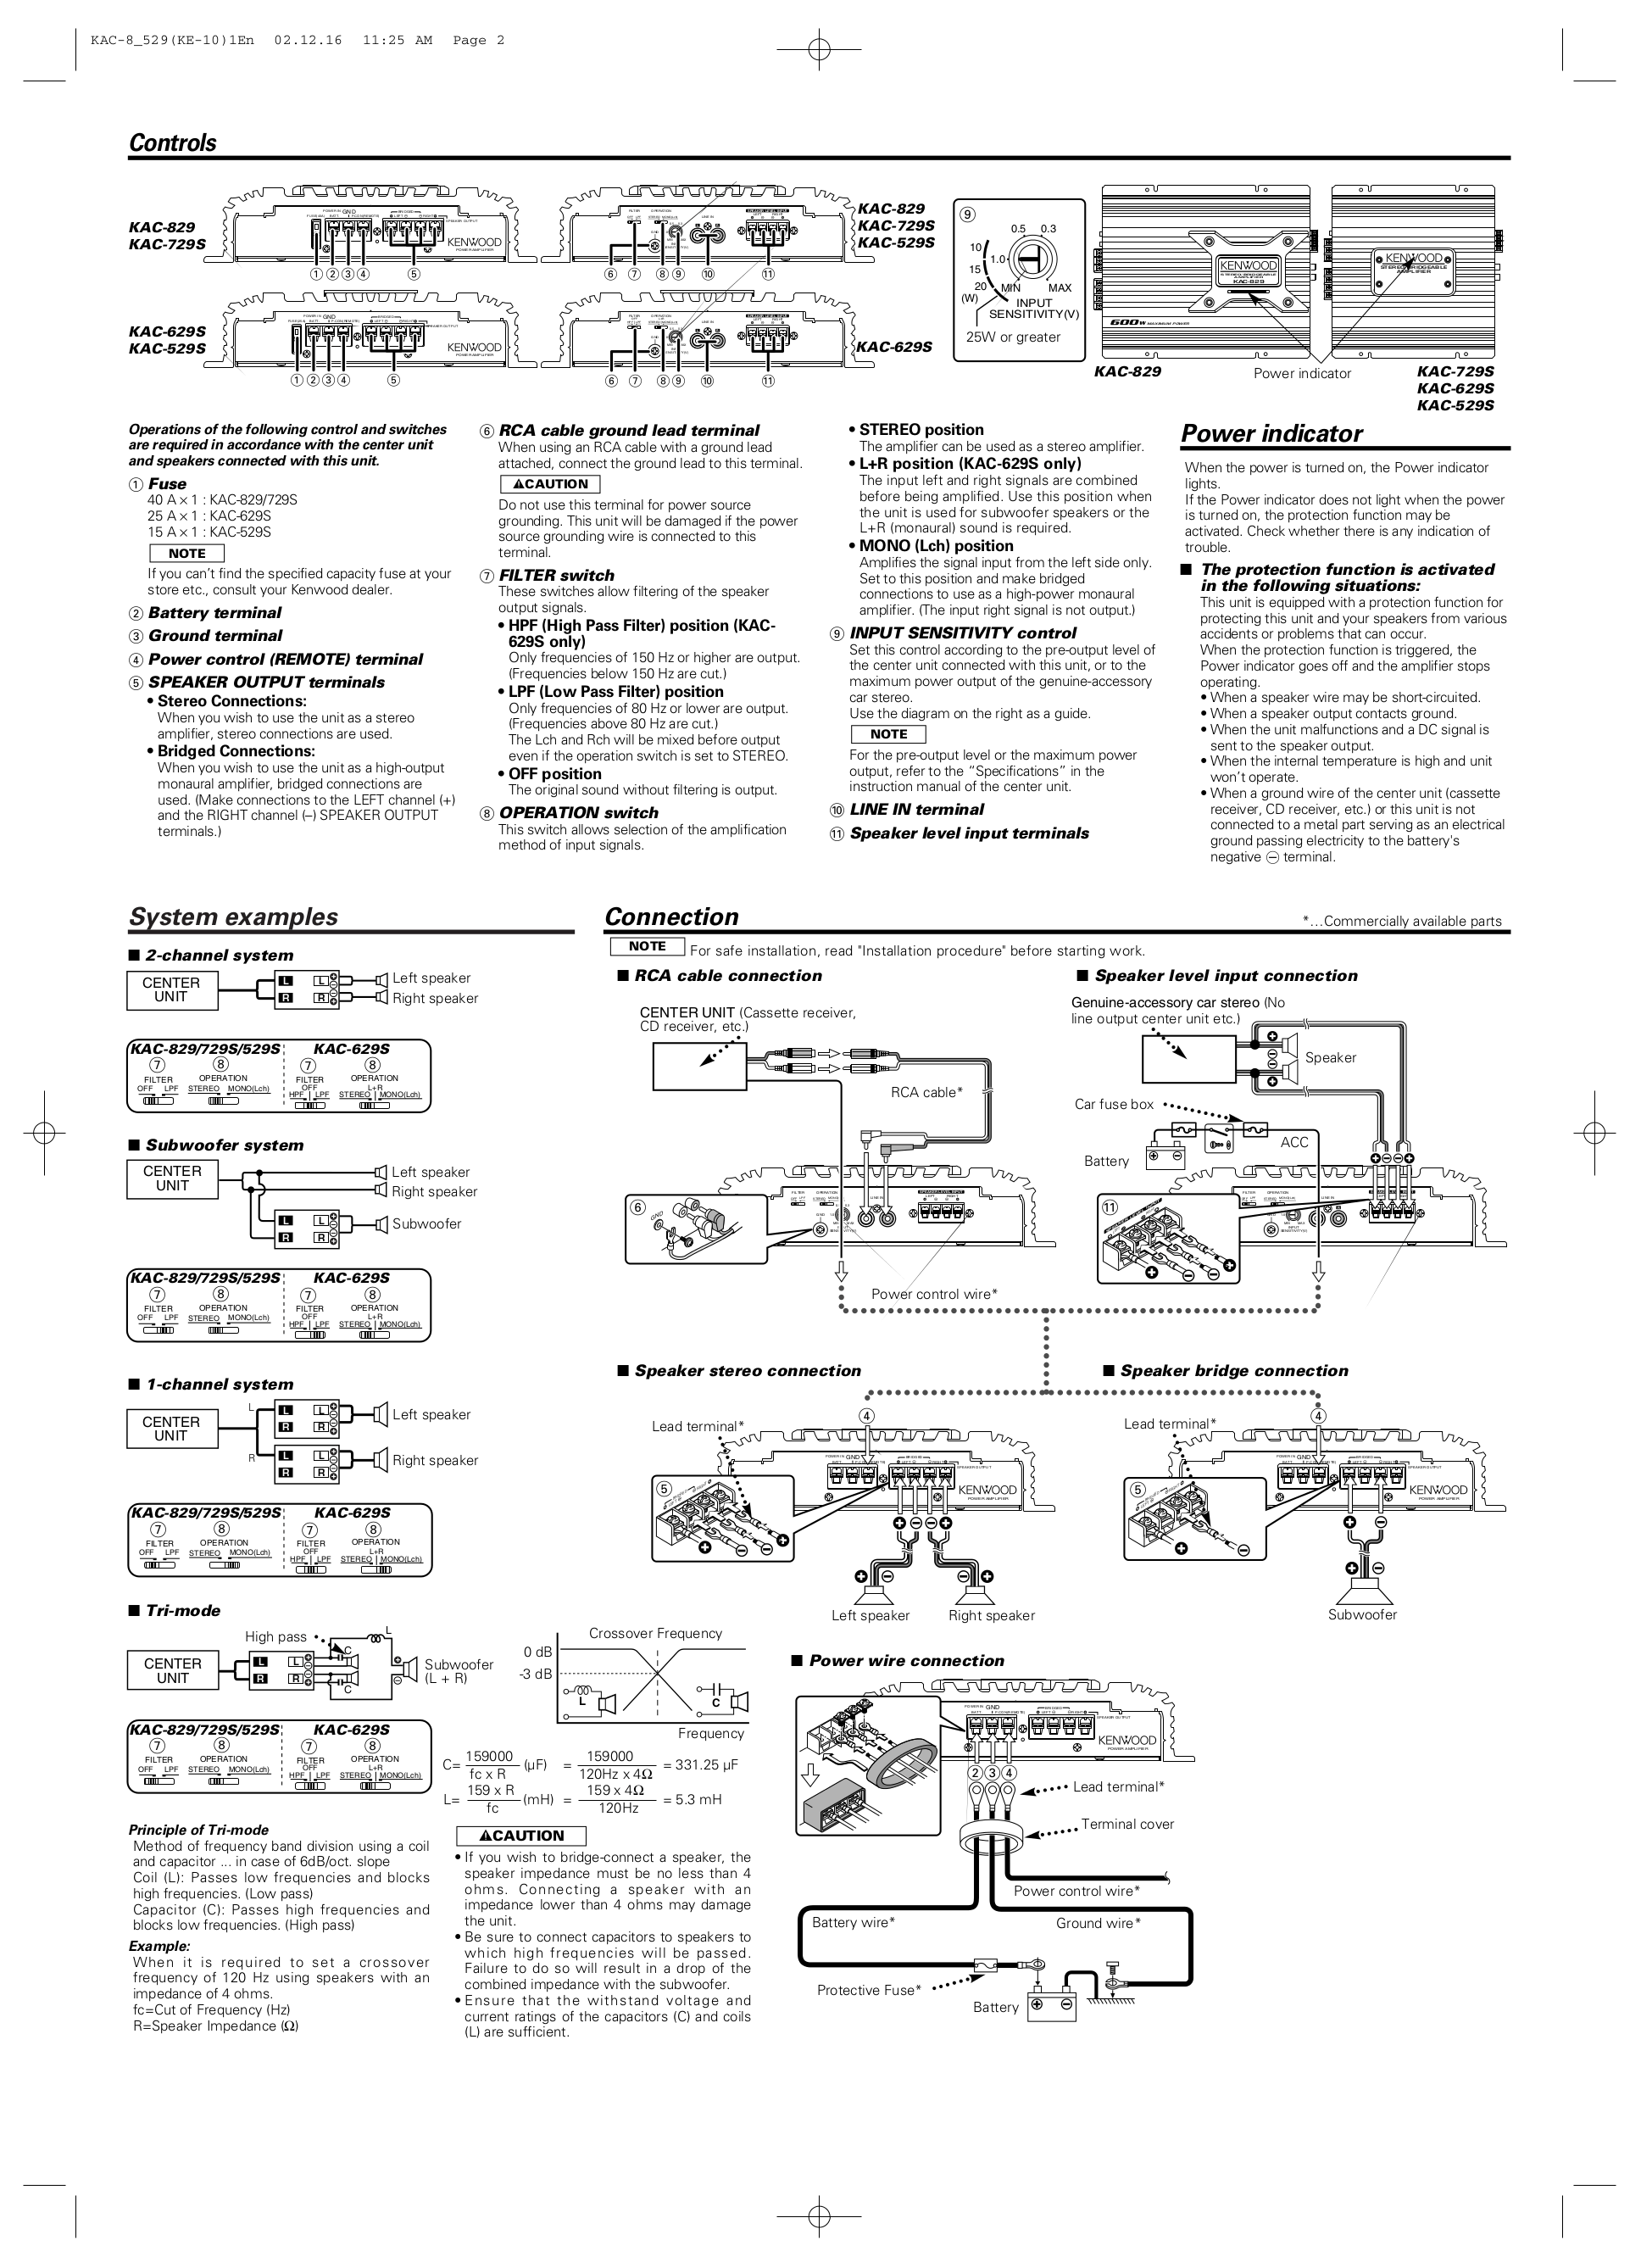 PDF manual for Kenwood Car Amplifier KAC-629S